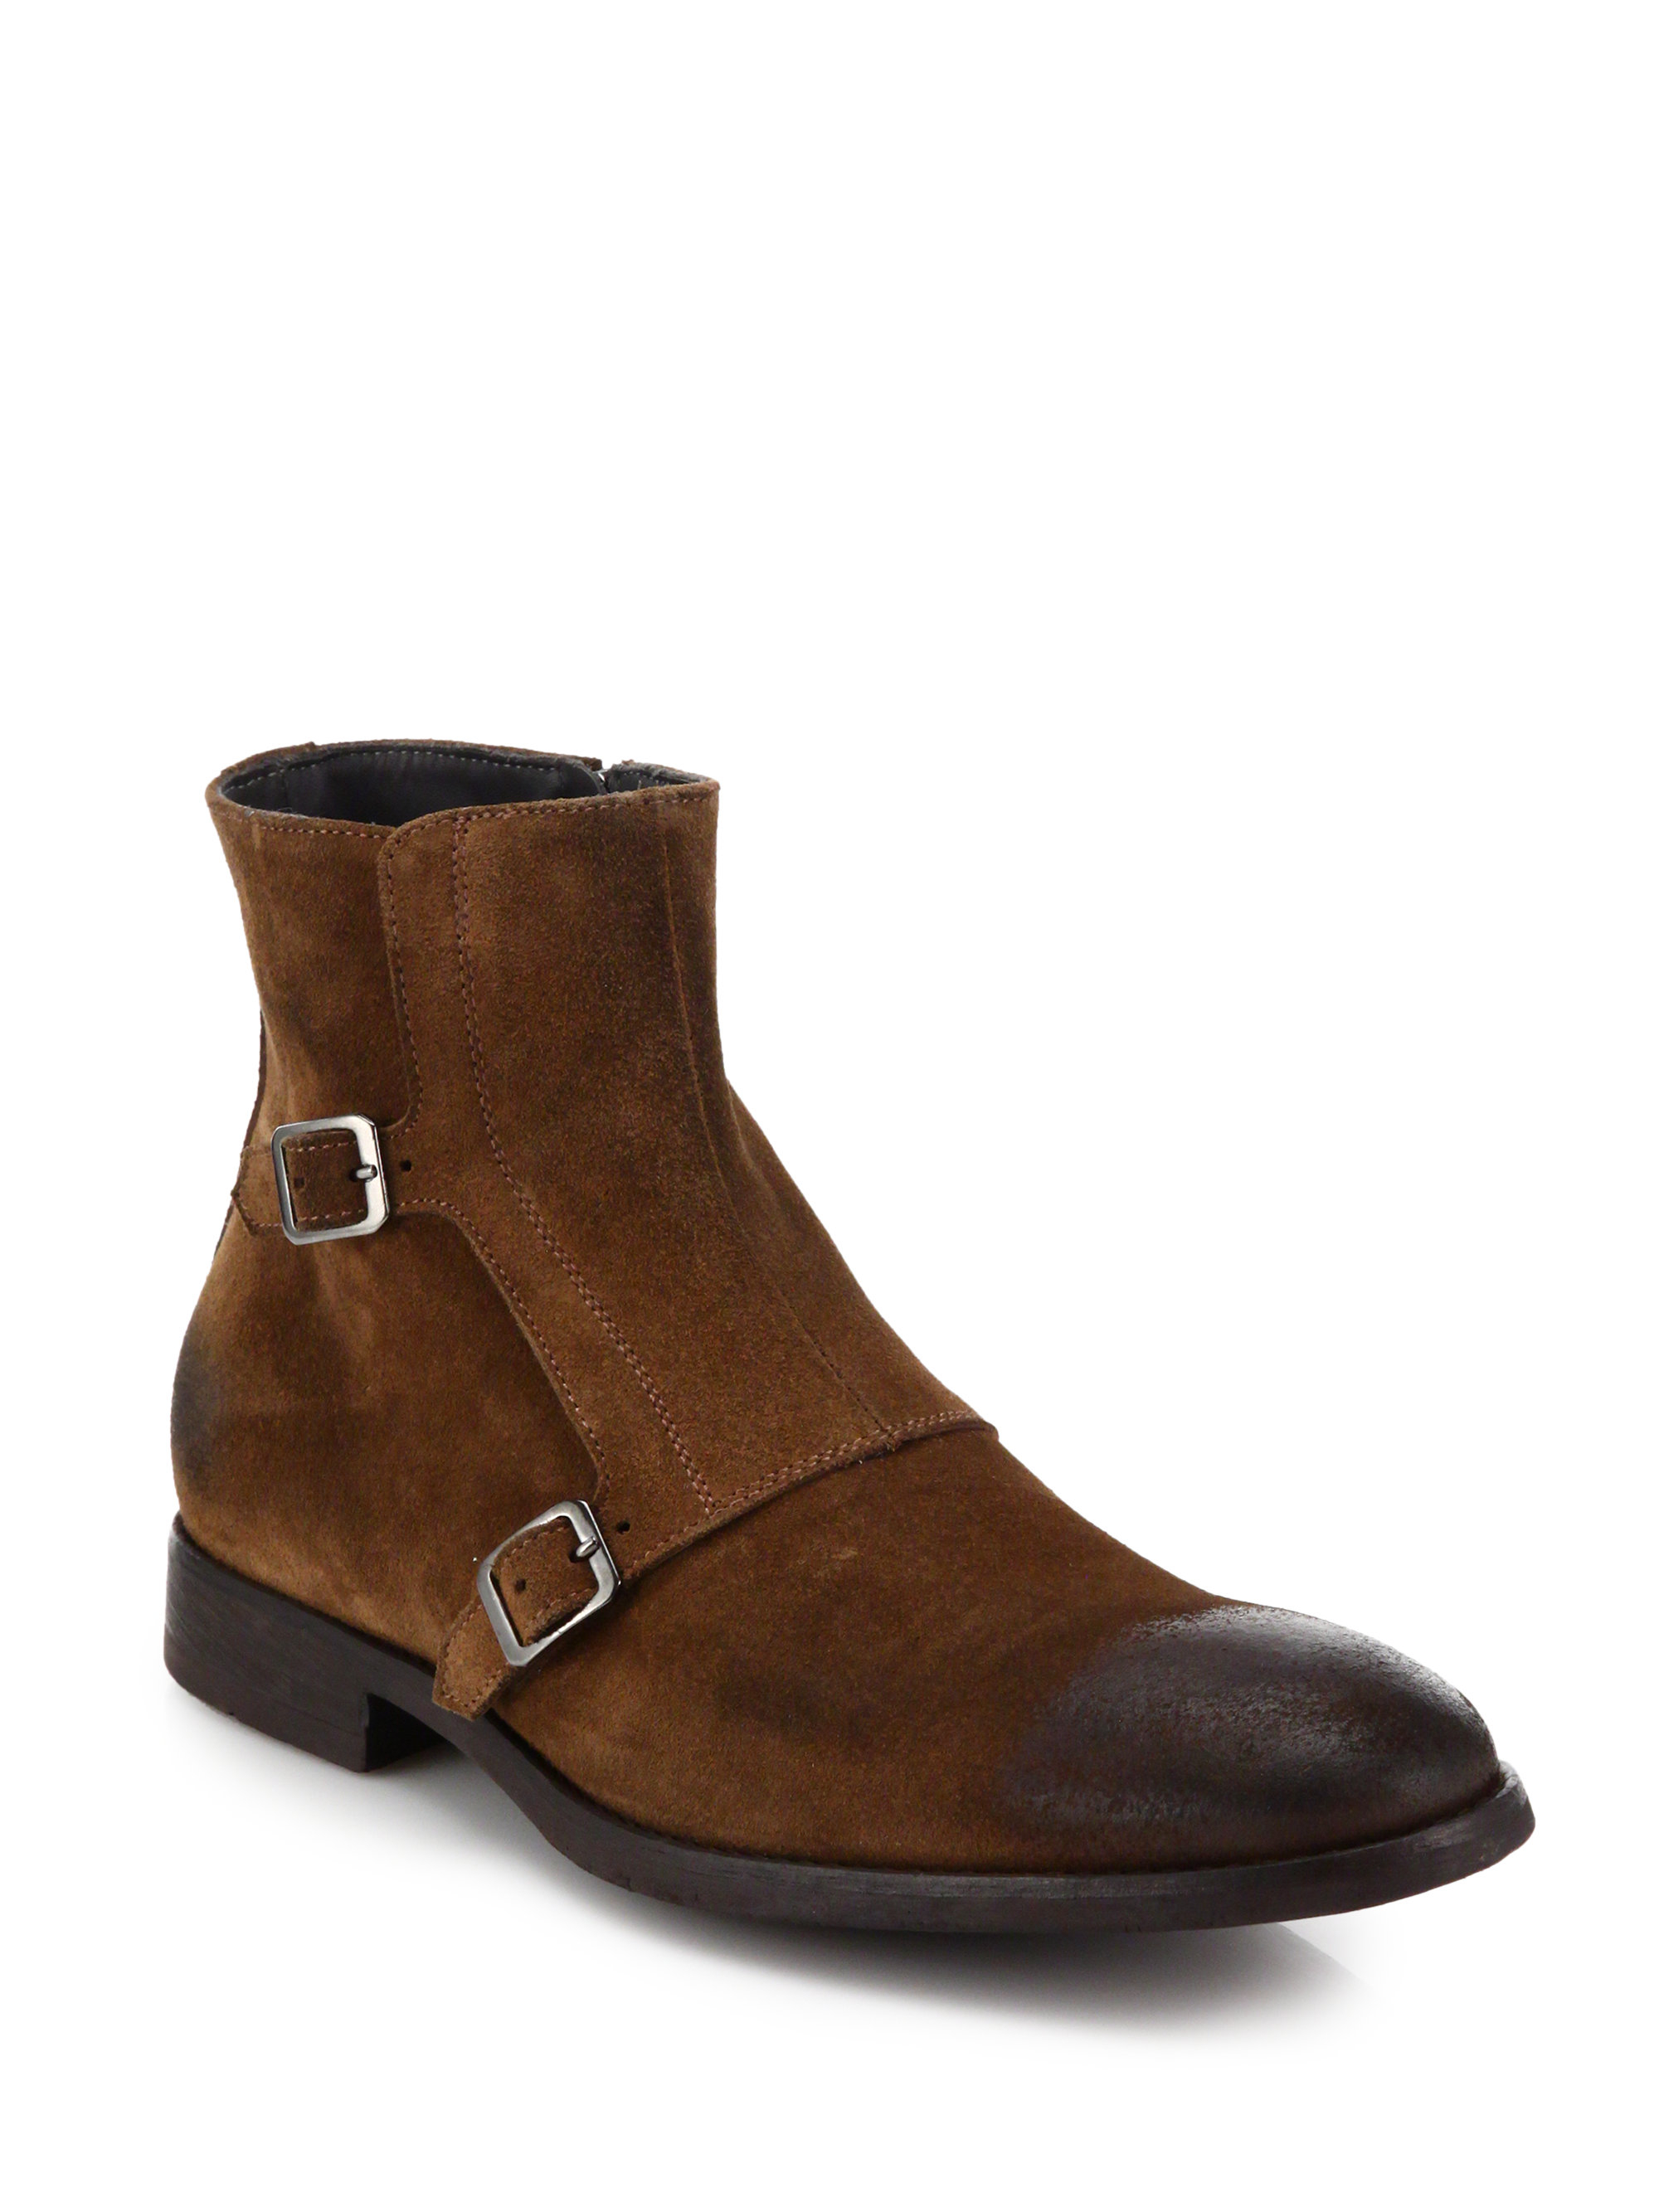 Lyst To Boot Gallis Double Buckle Monk Strap Boots In